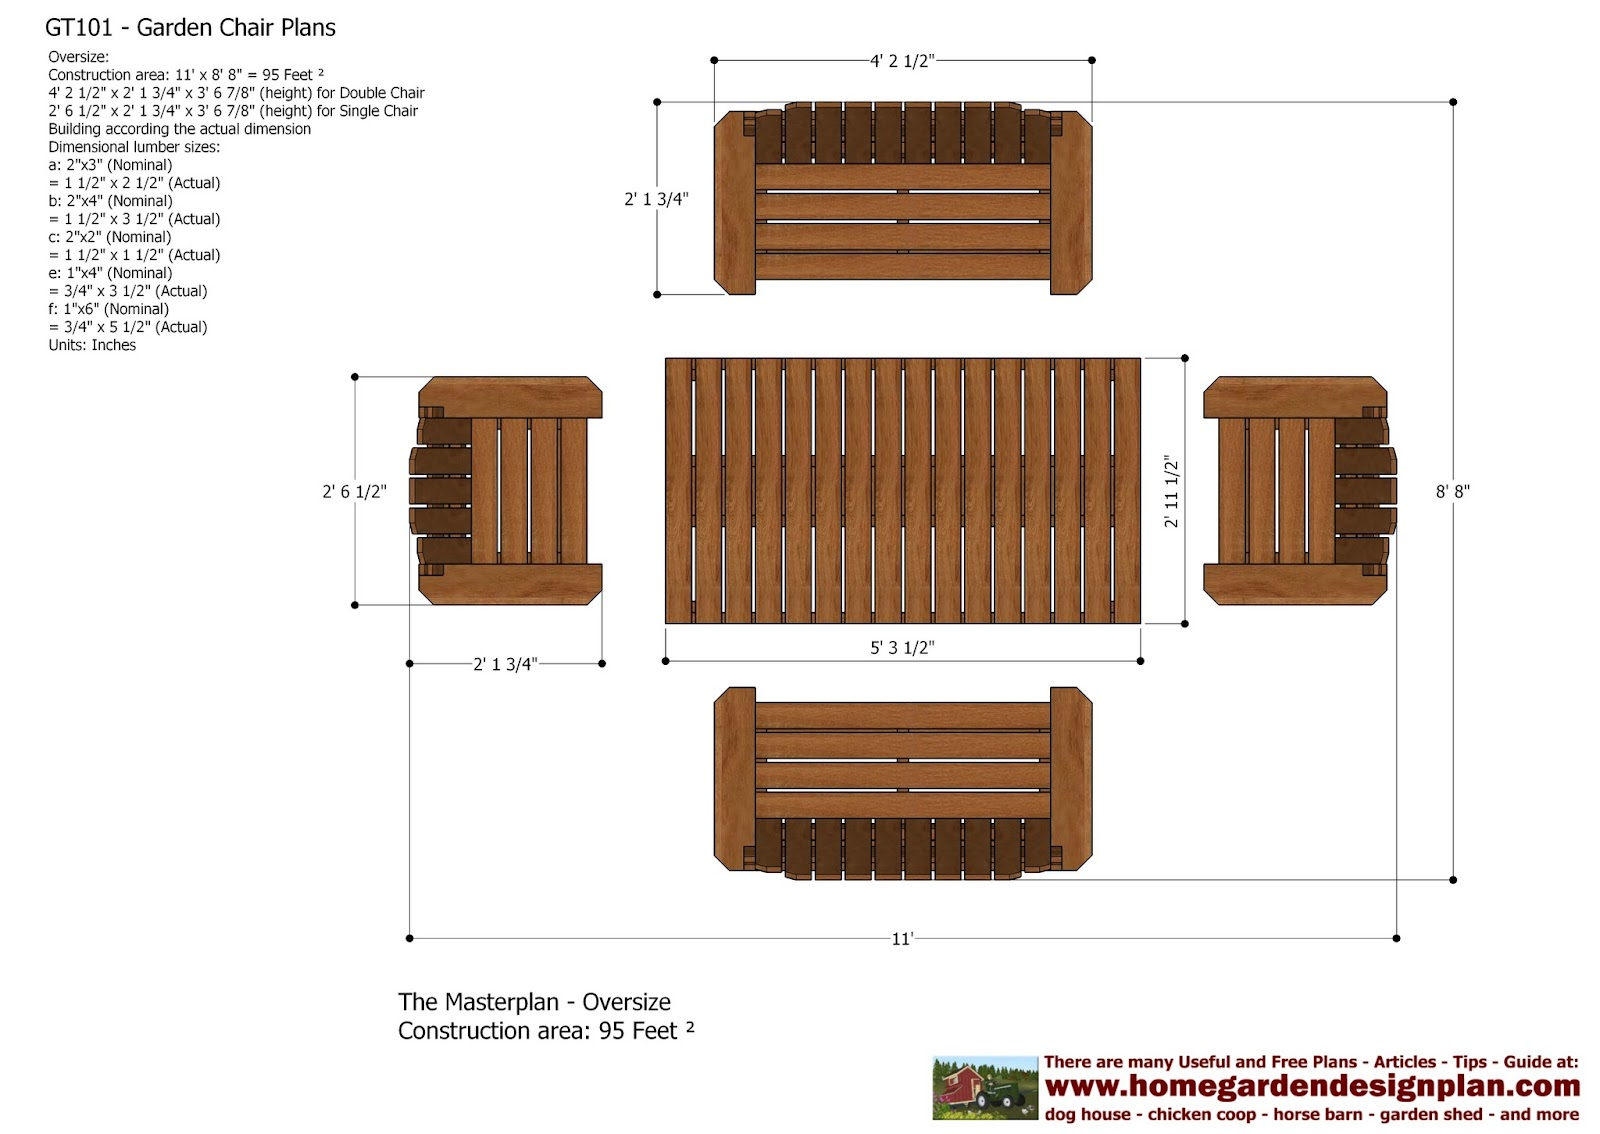 Befallo WoodWork: Campaign furniture chair plans